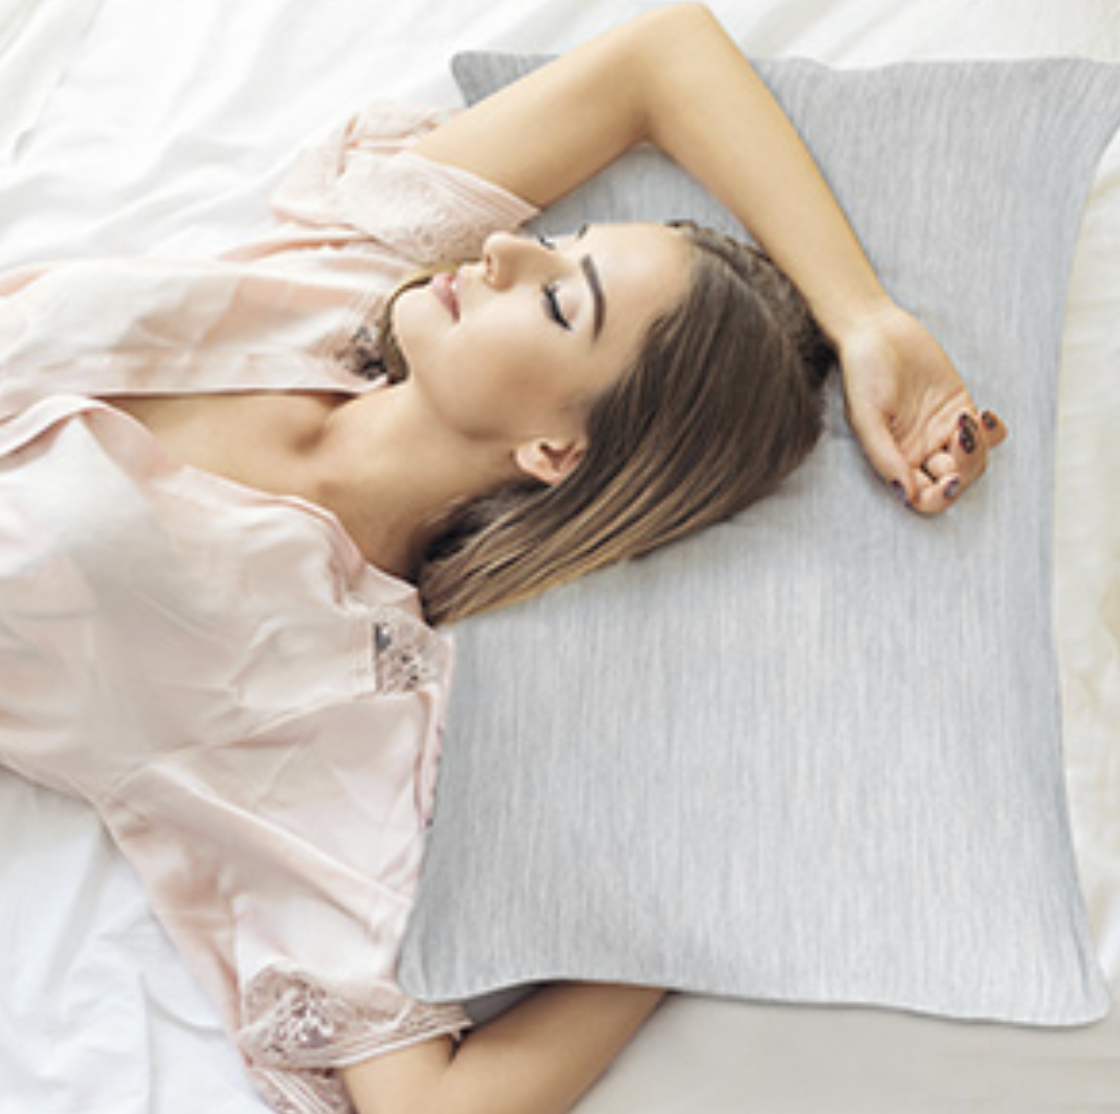 A model laying on a gray pillow